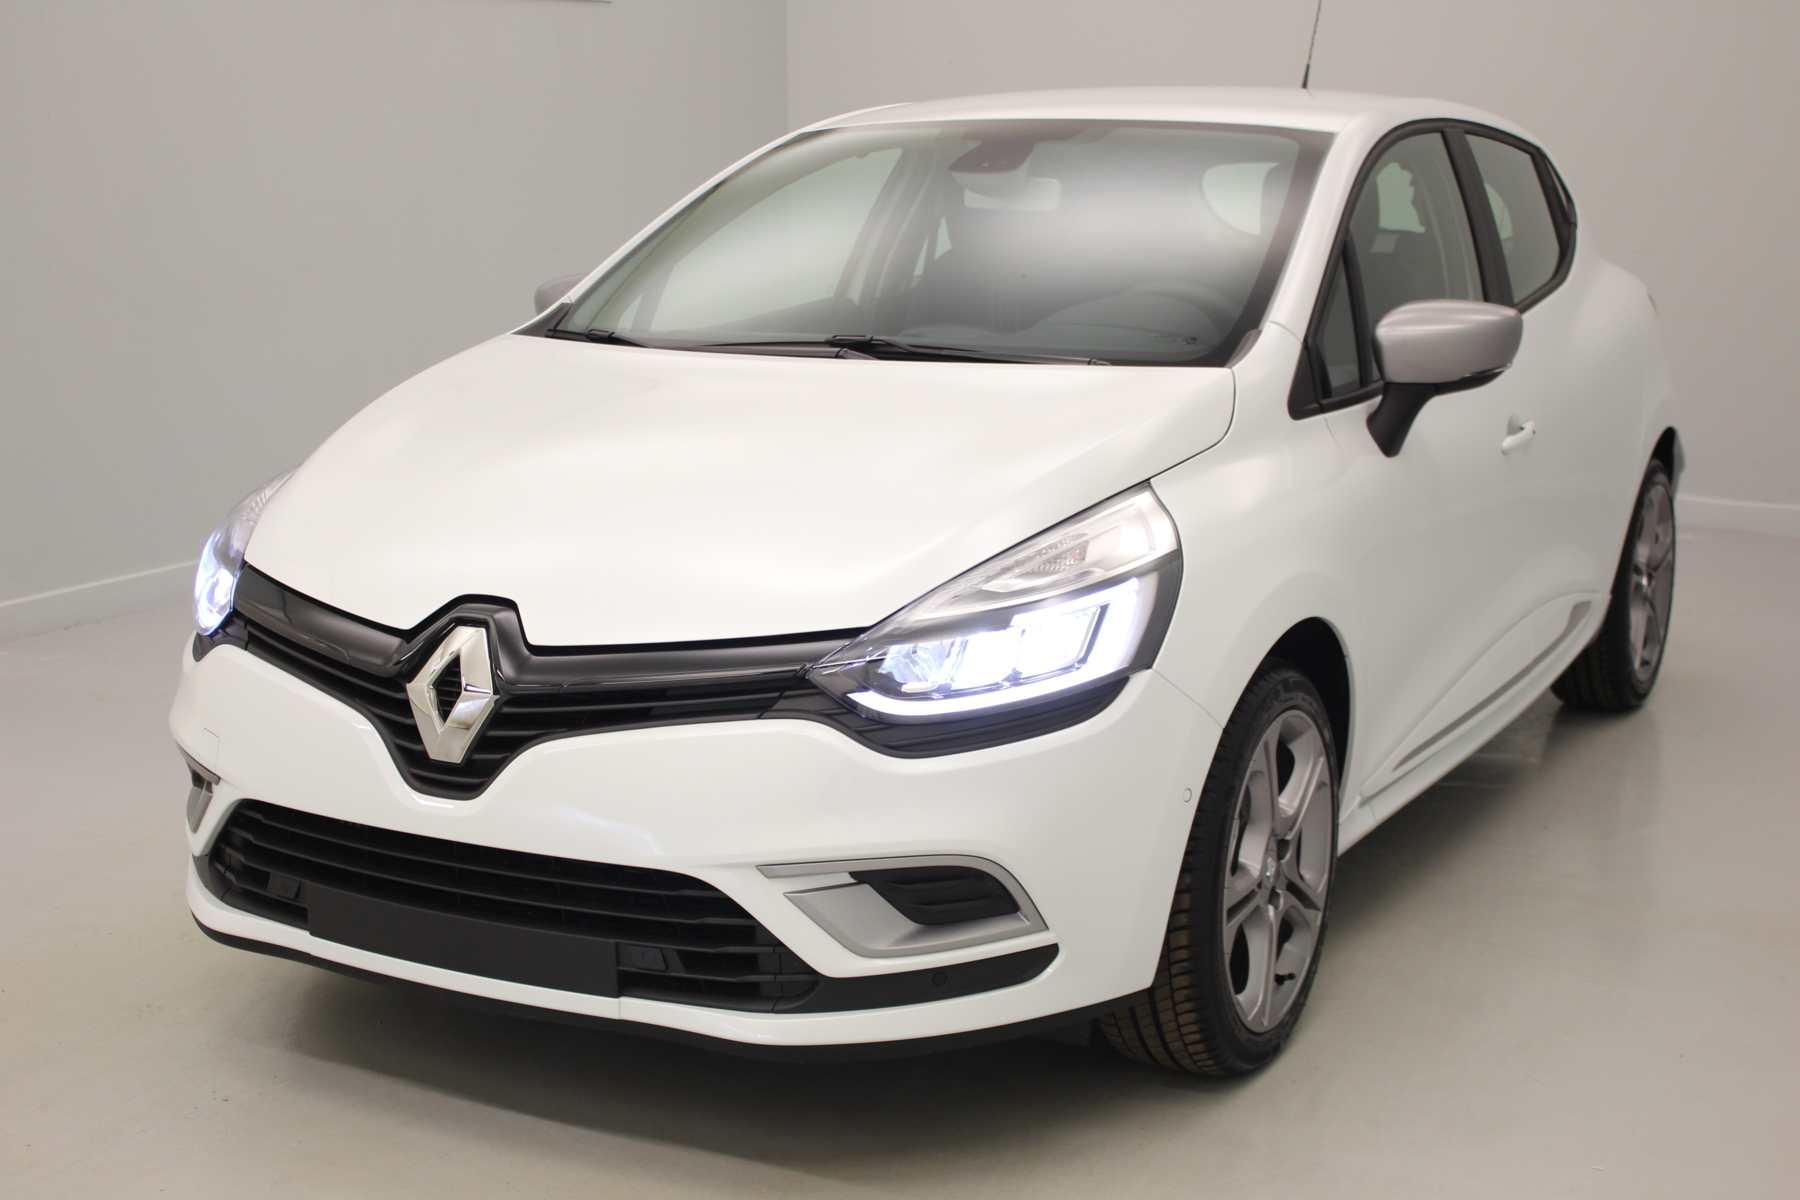 RENAULT Clio IV Nouvelle TCe 90 Energy Intens Blanc Nacré + Full Pack GT-Line + Roue de secours + Pack Techno avec options